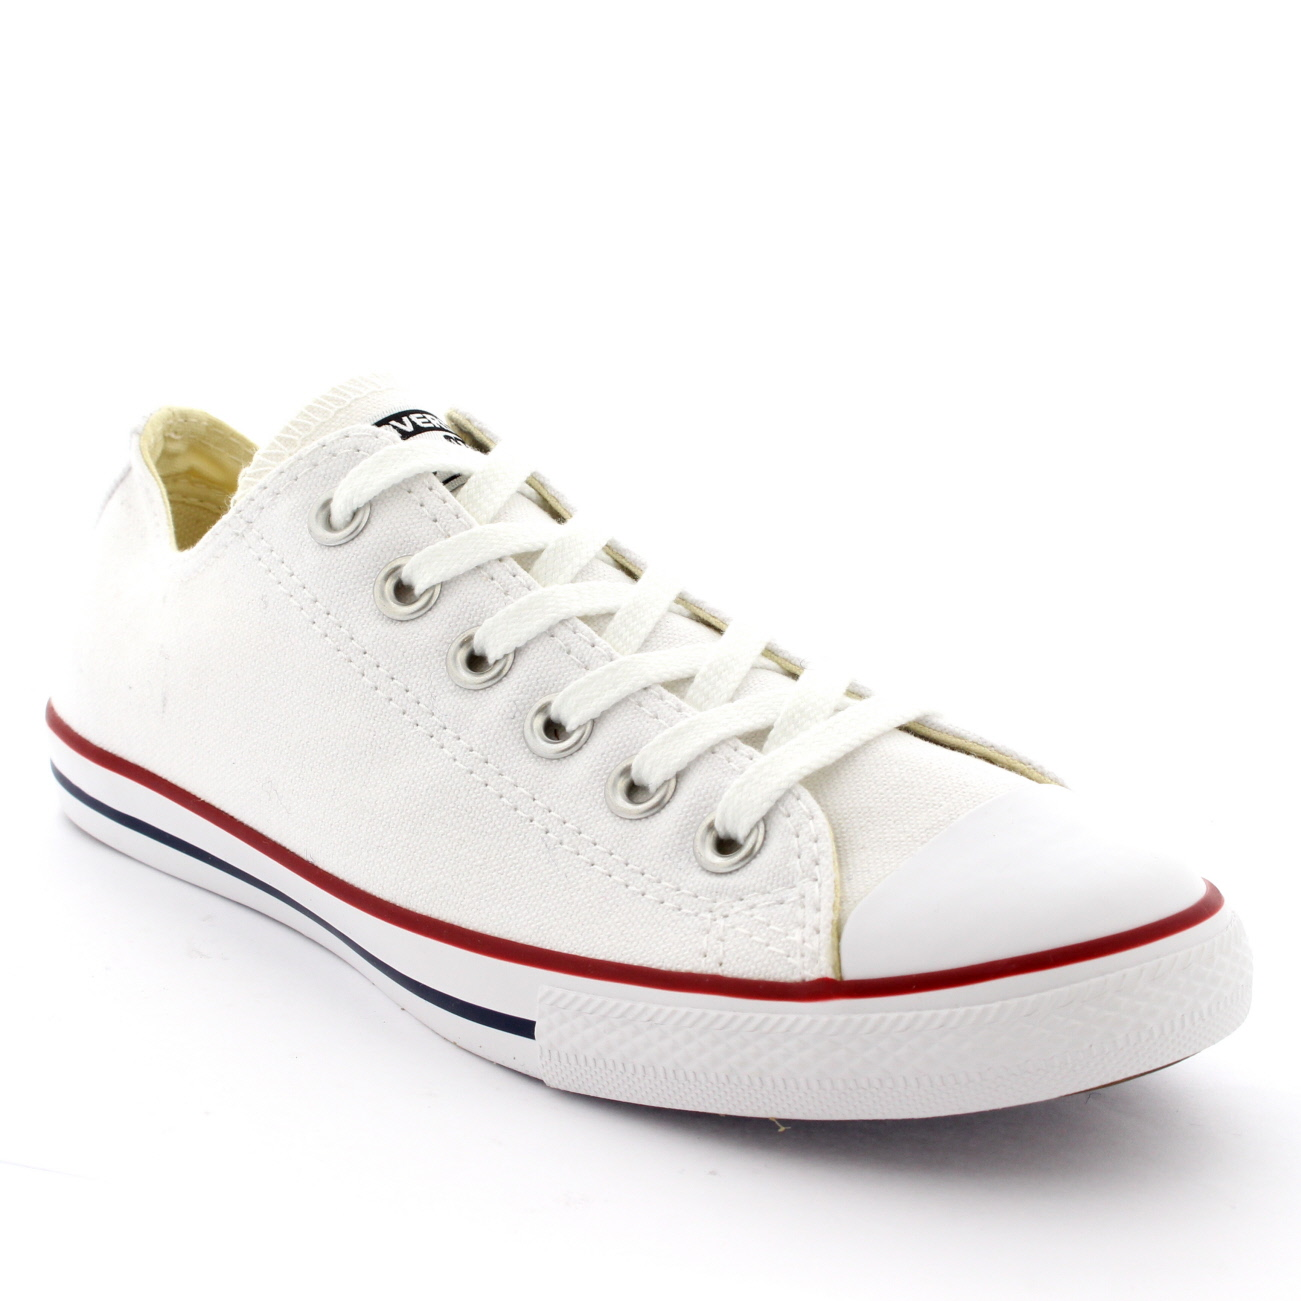 mens converse lean ox chuck taylor all star chucks low top. Black Bedroom Furniture Sets. Home Design Ideas